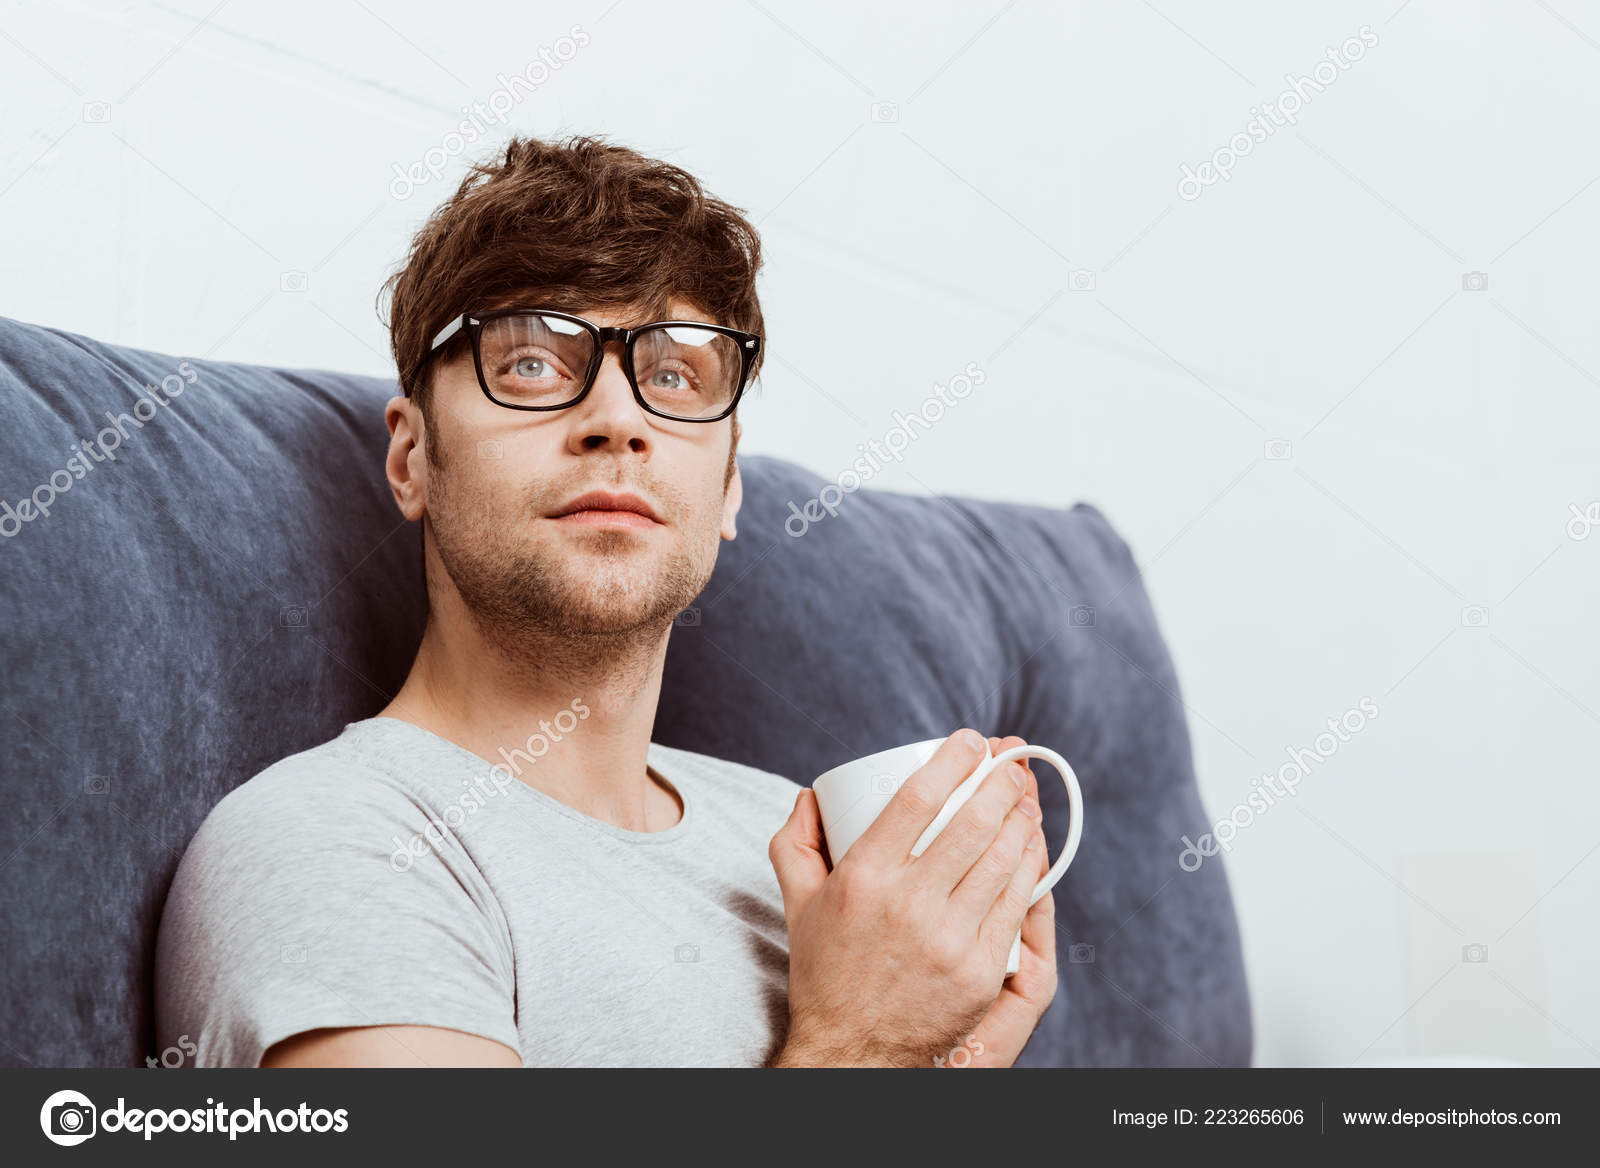 f4ec82505bb Handsome Young Man Eyeglasses Coffee Cup Home — Stock Photo ...